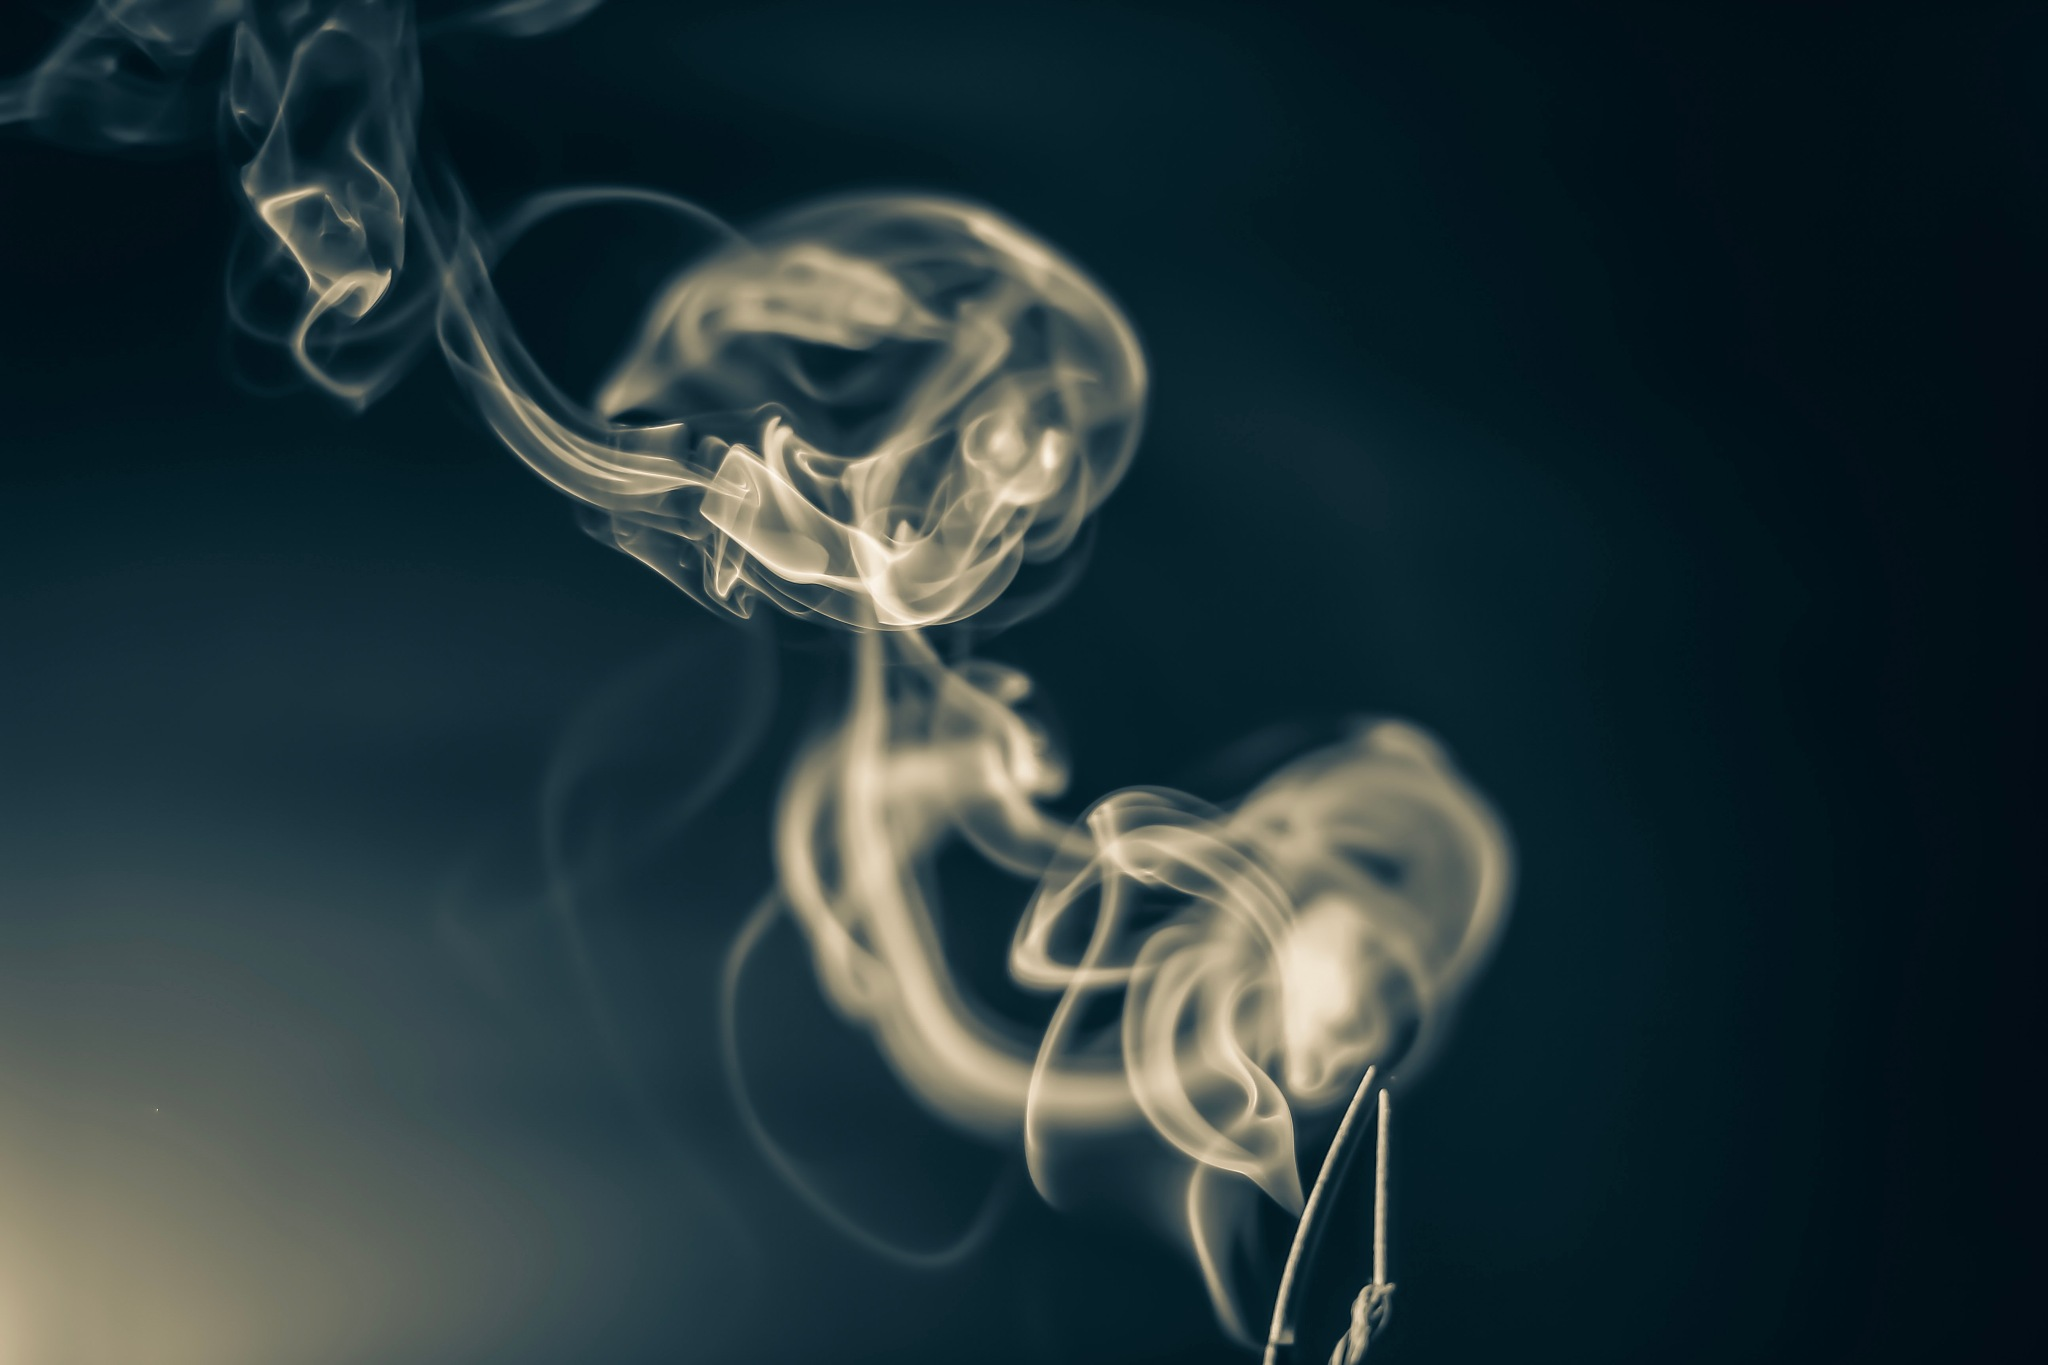 Smoke Photography by Anks Photography